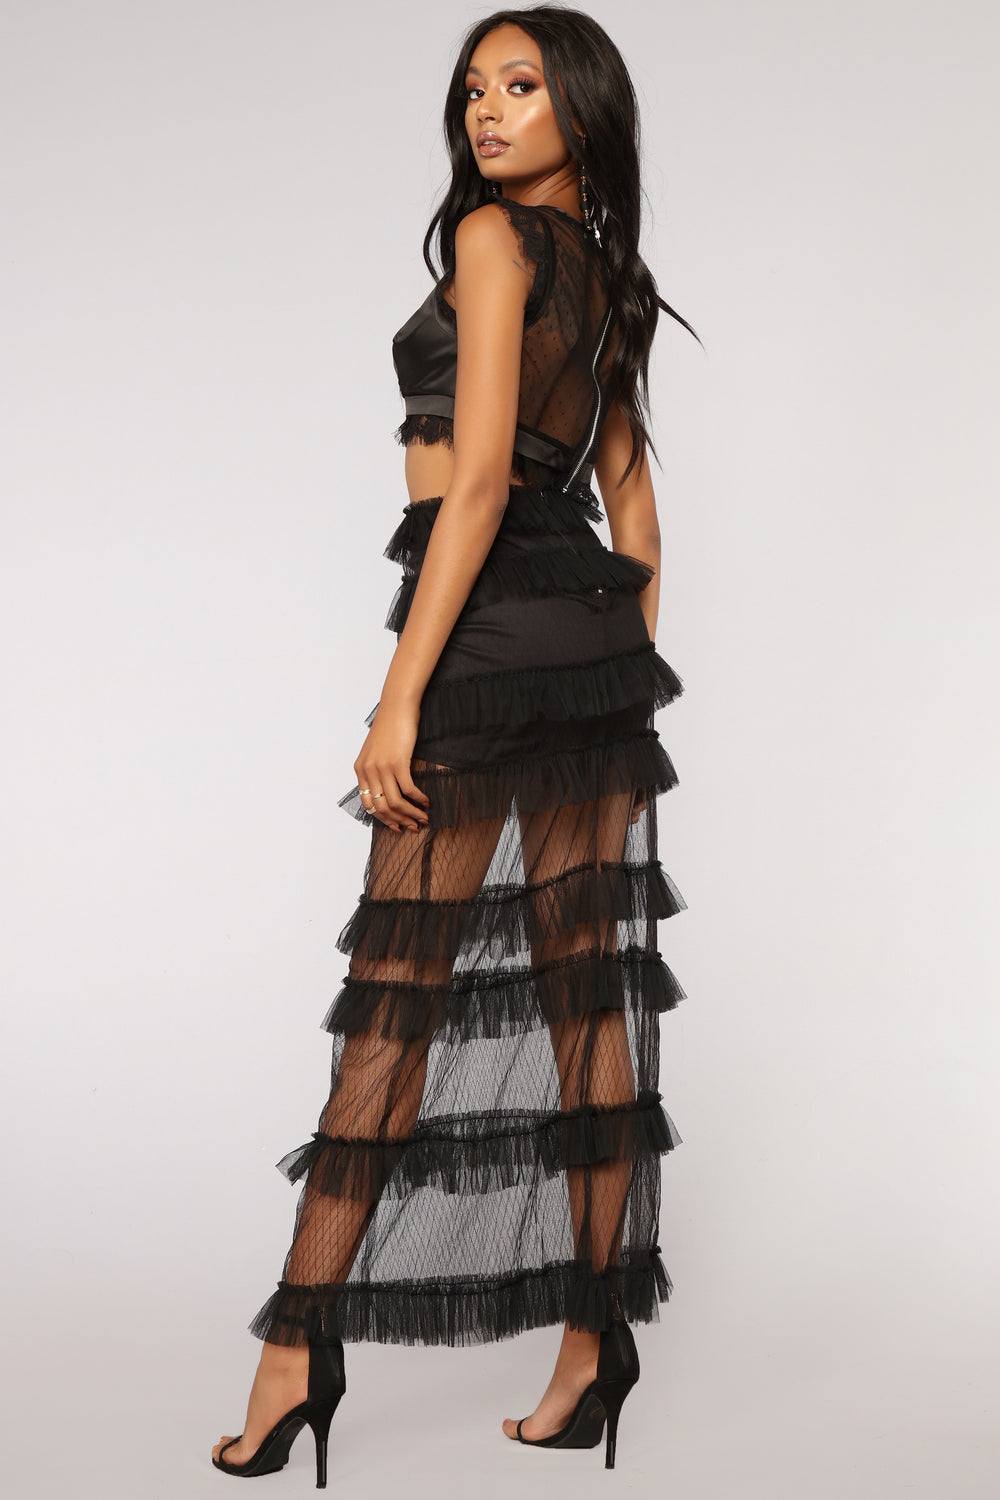 From A Dream Ruffle Skirt - Black